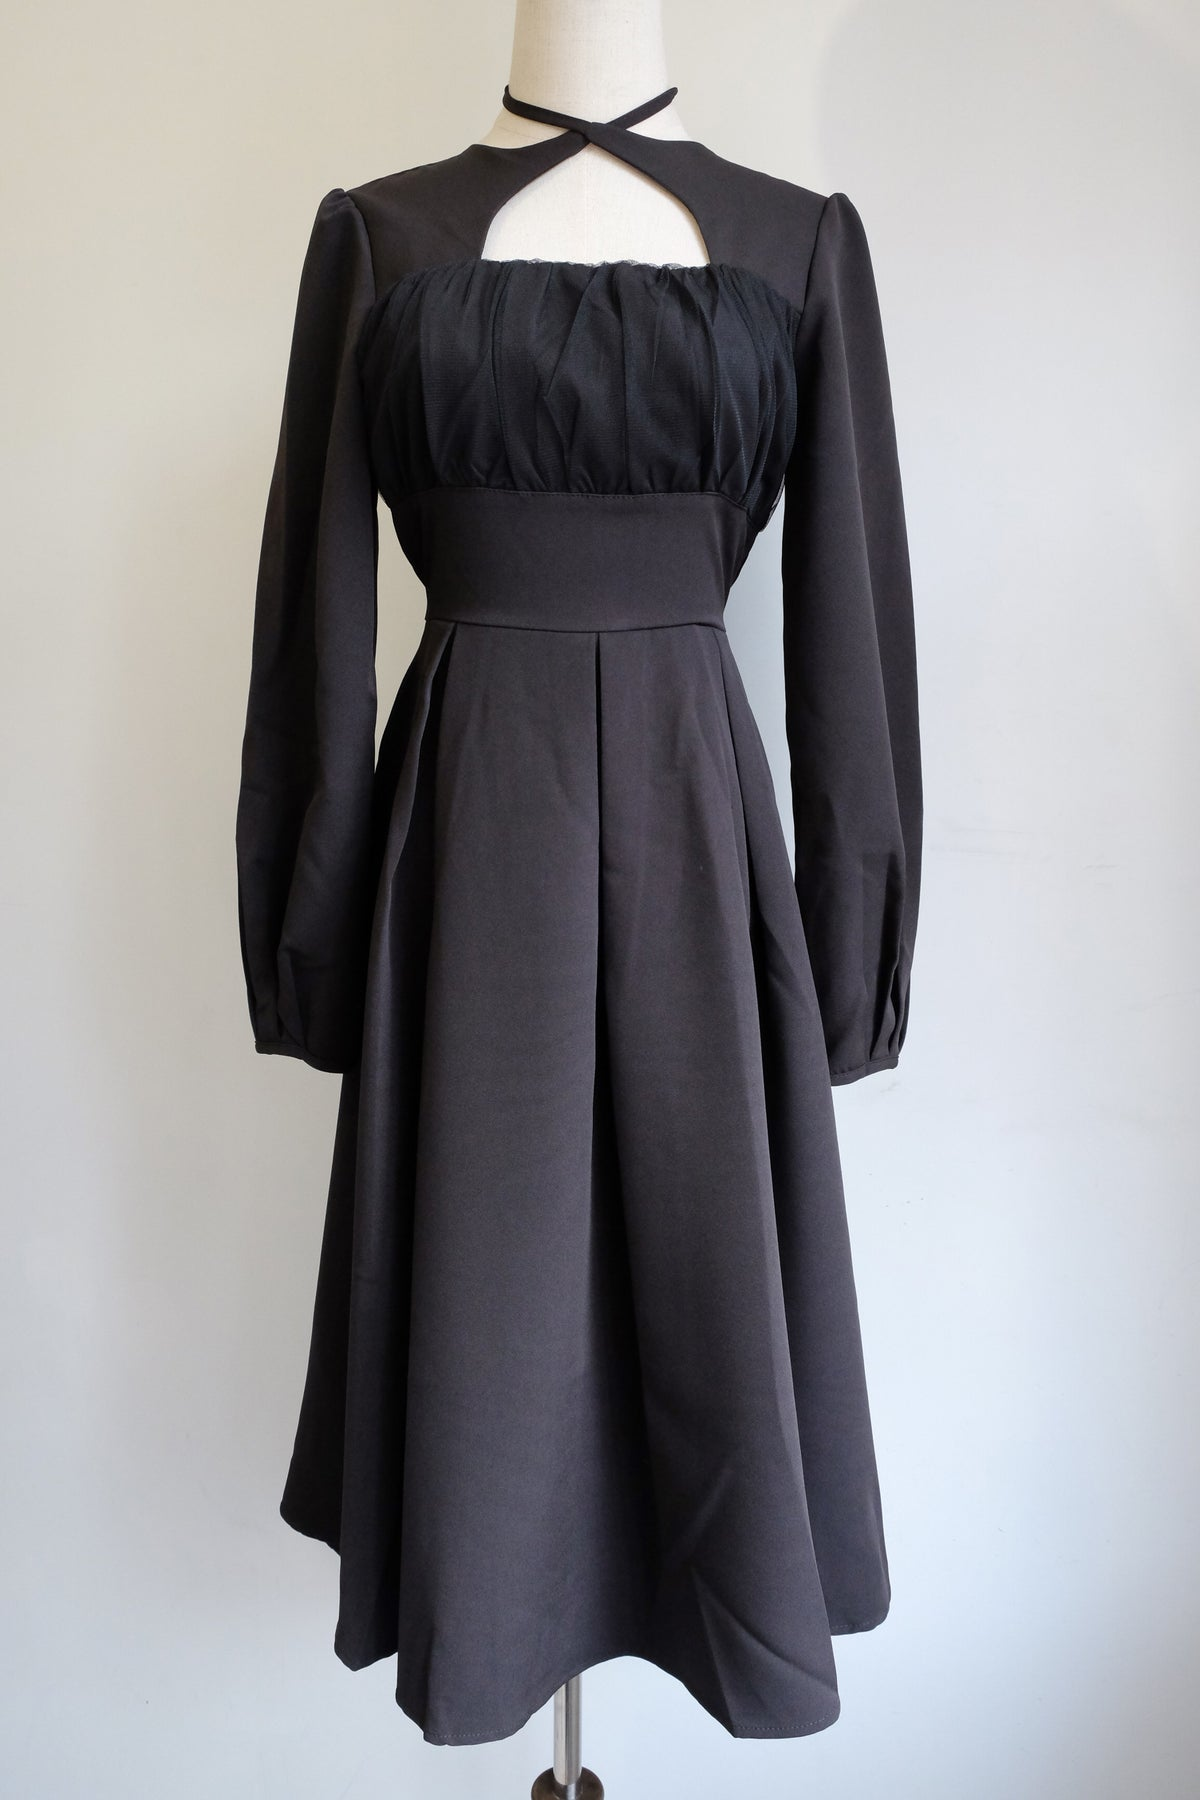 Image of SAMPLE SALE - Unreleased Dress 20